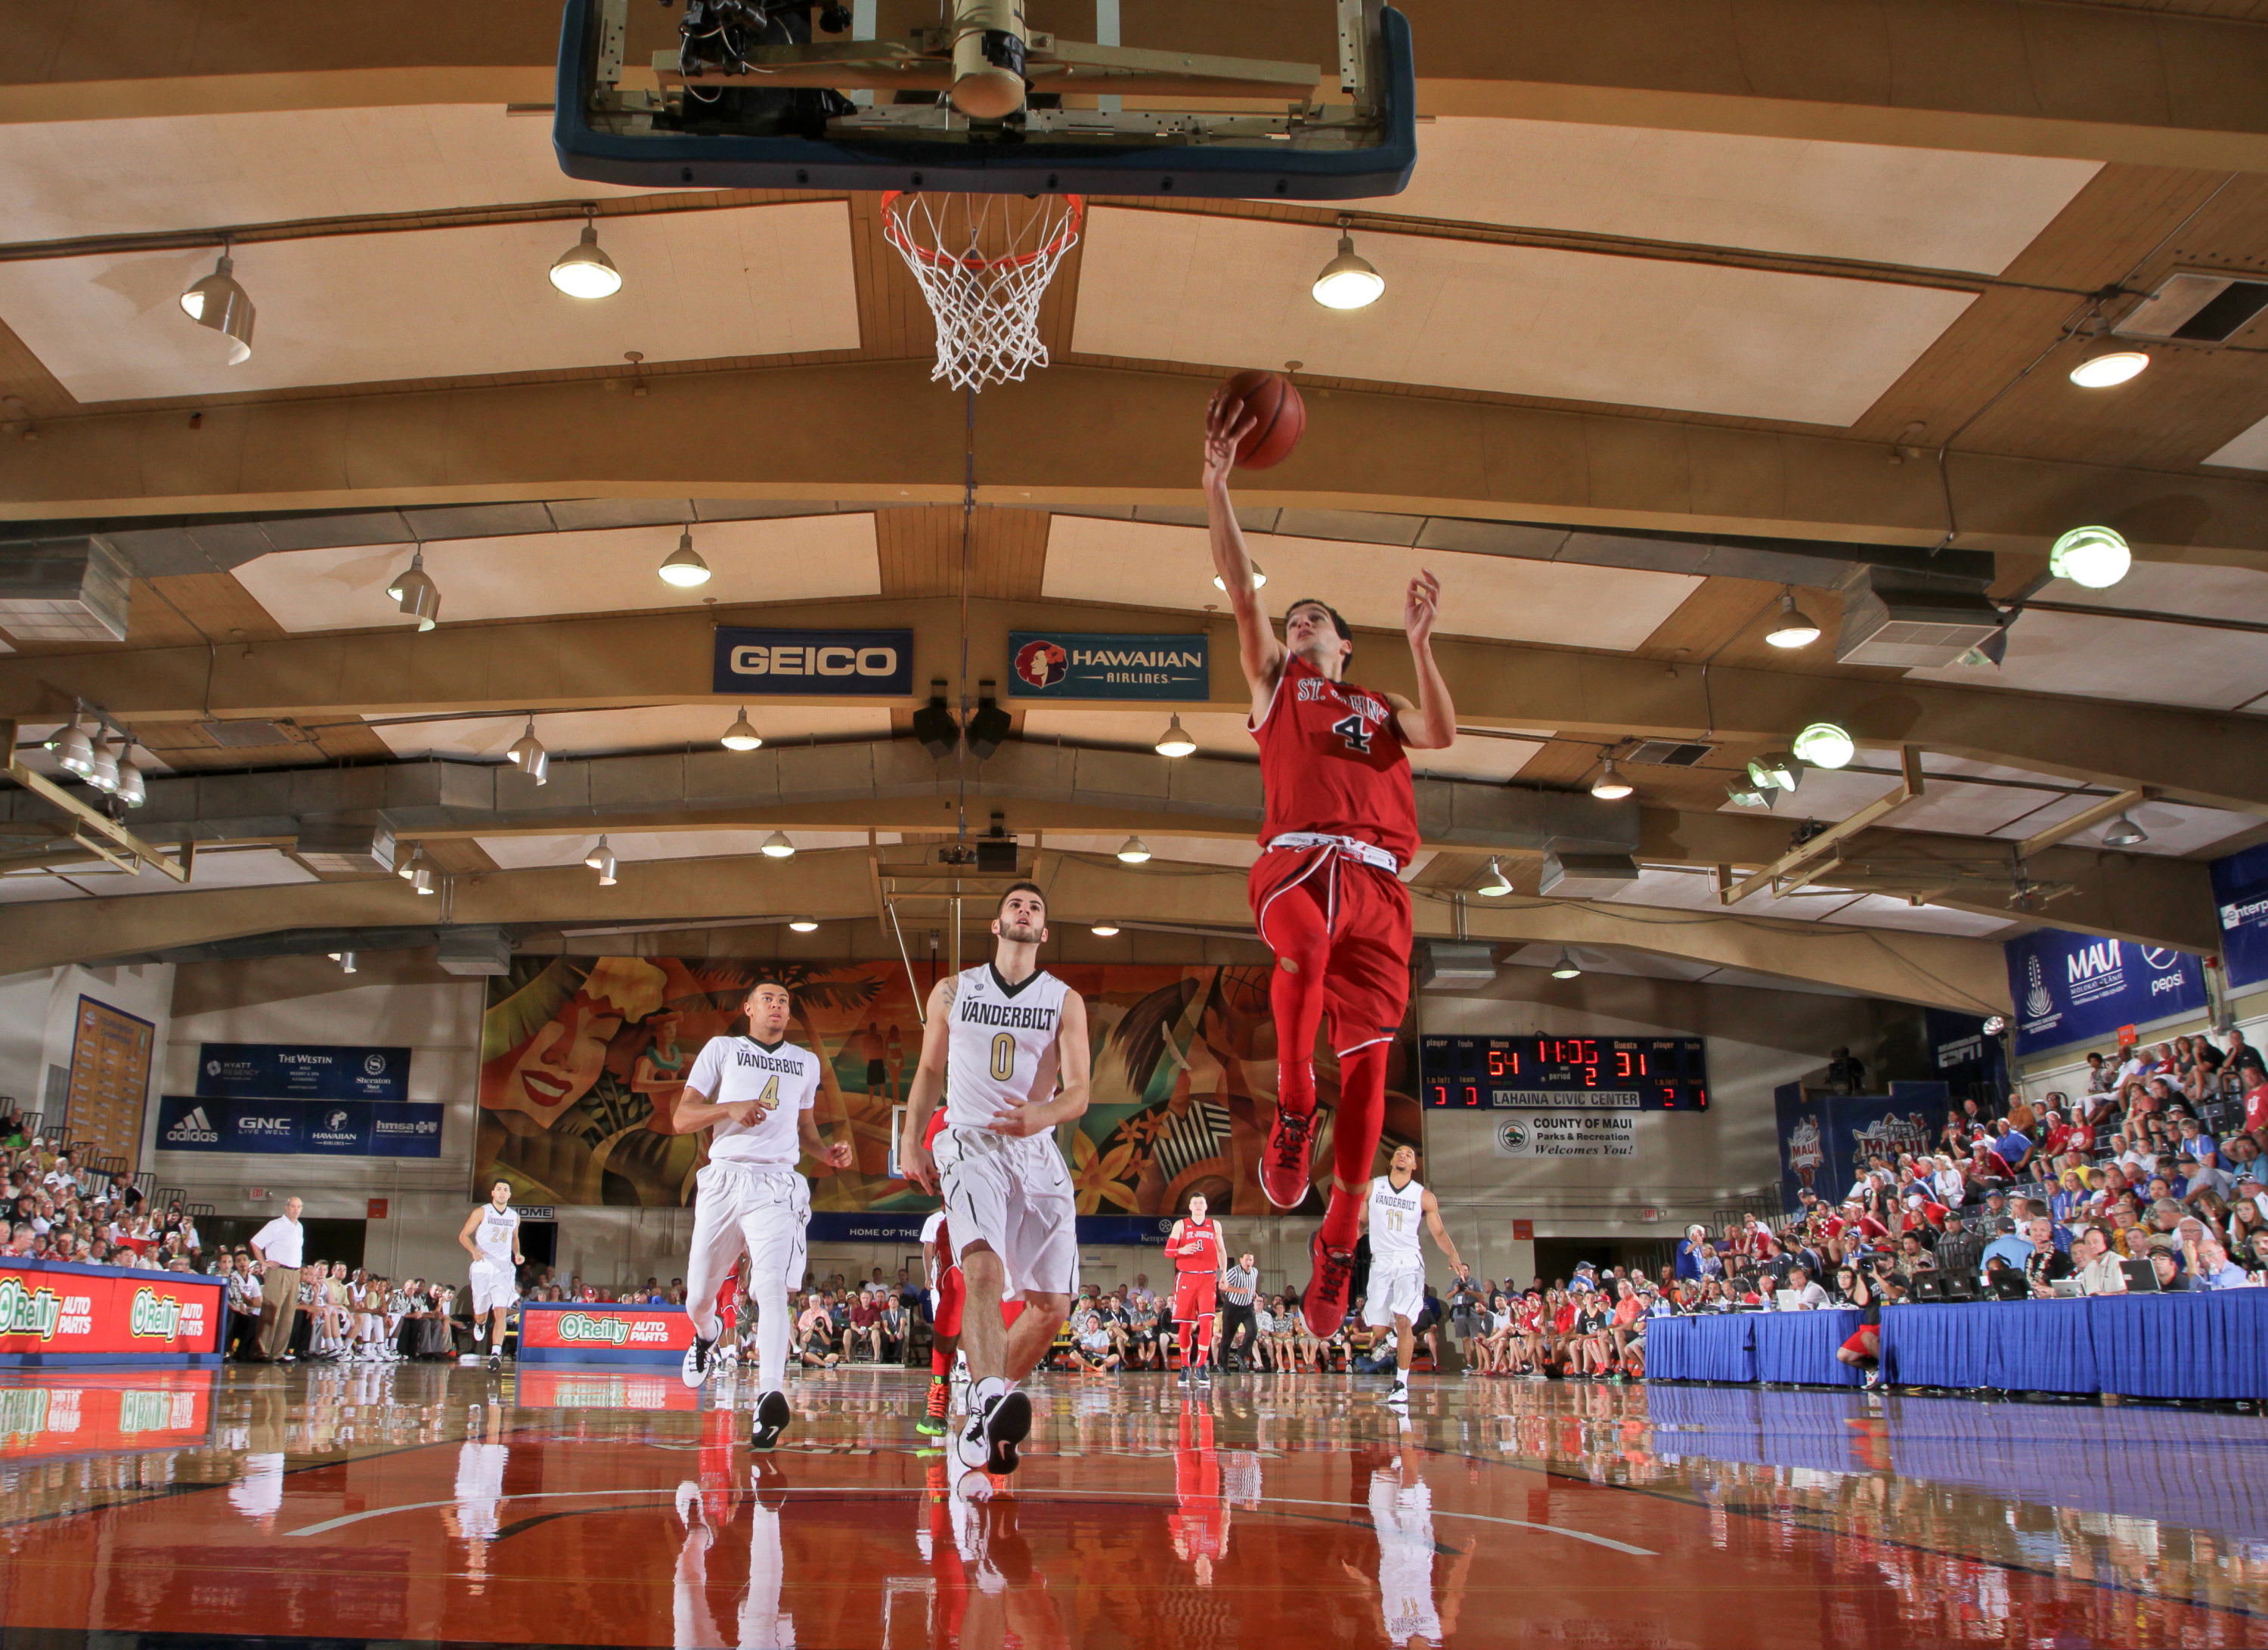 Federico Mussini scored a game-high 14 points for the Red Storm.